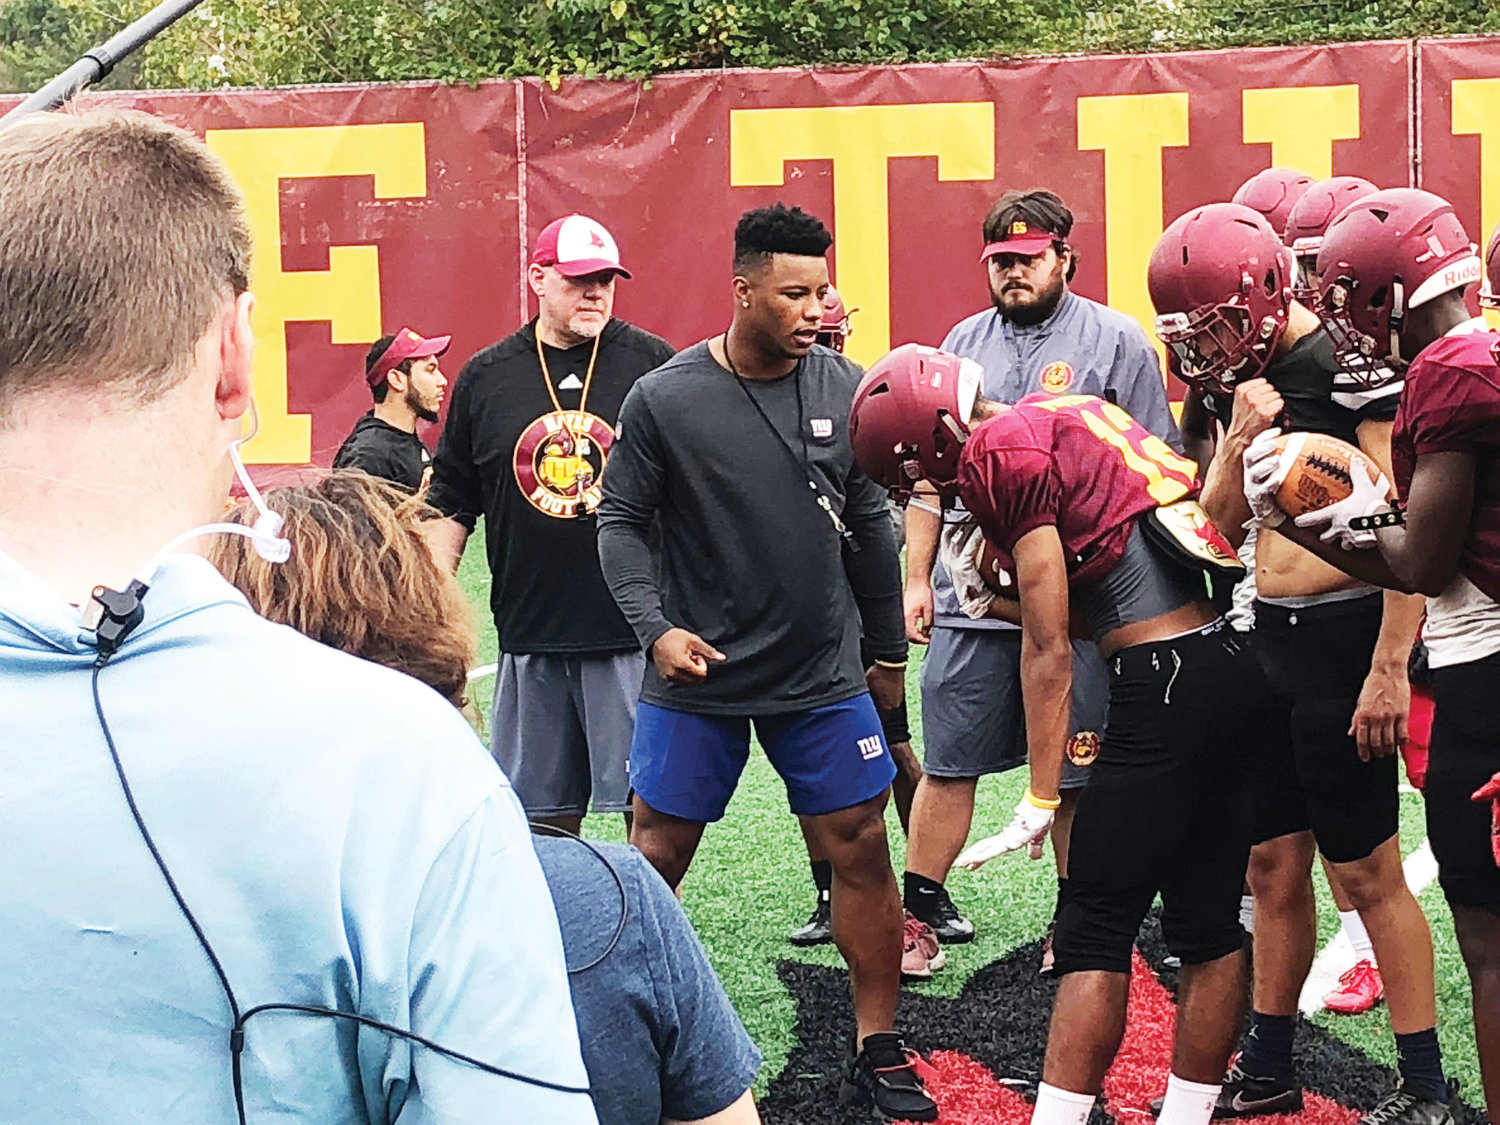 New York Giants rookie running back Saquon Barkley works with Cardinal Hayes High School football players at practice in the Bronx Oct. 2.